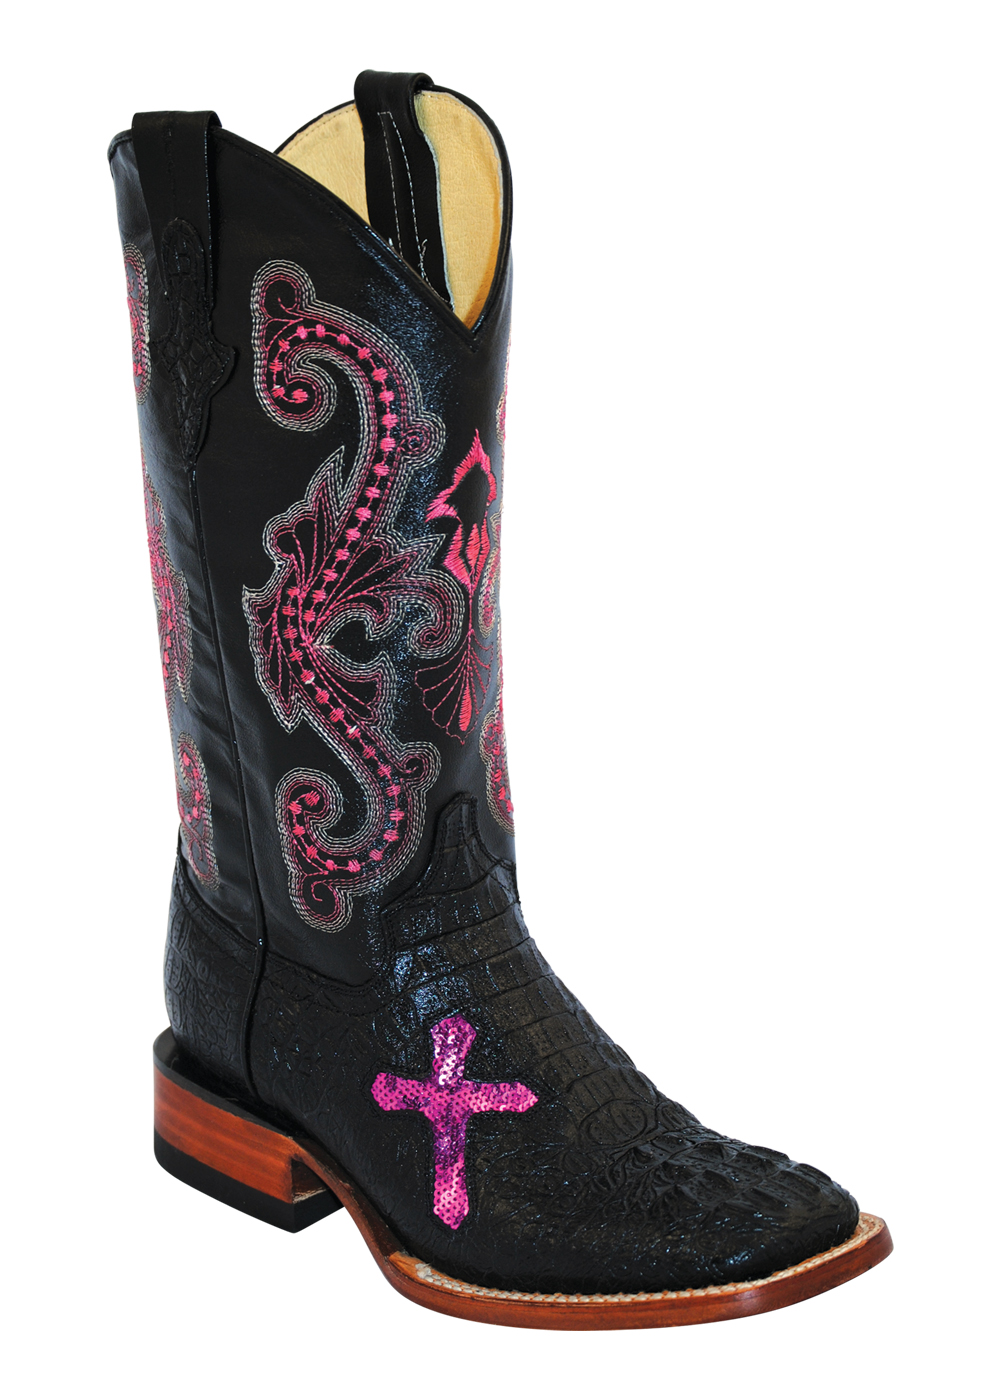 New Justin Justin L3703 Women Leather Black Western Boot Boots